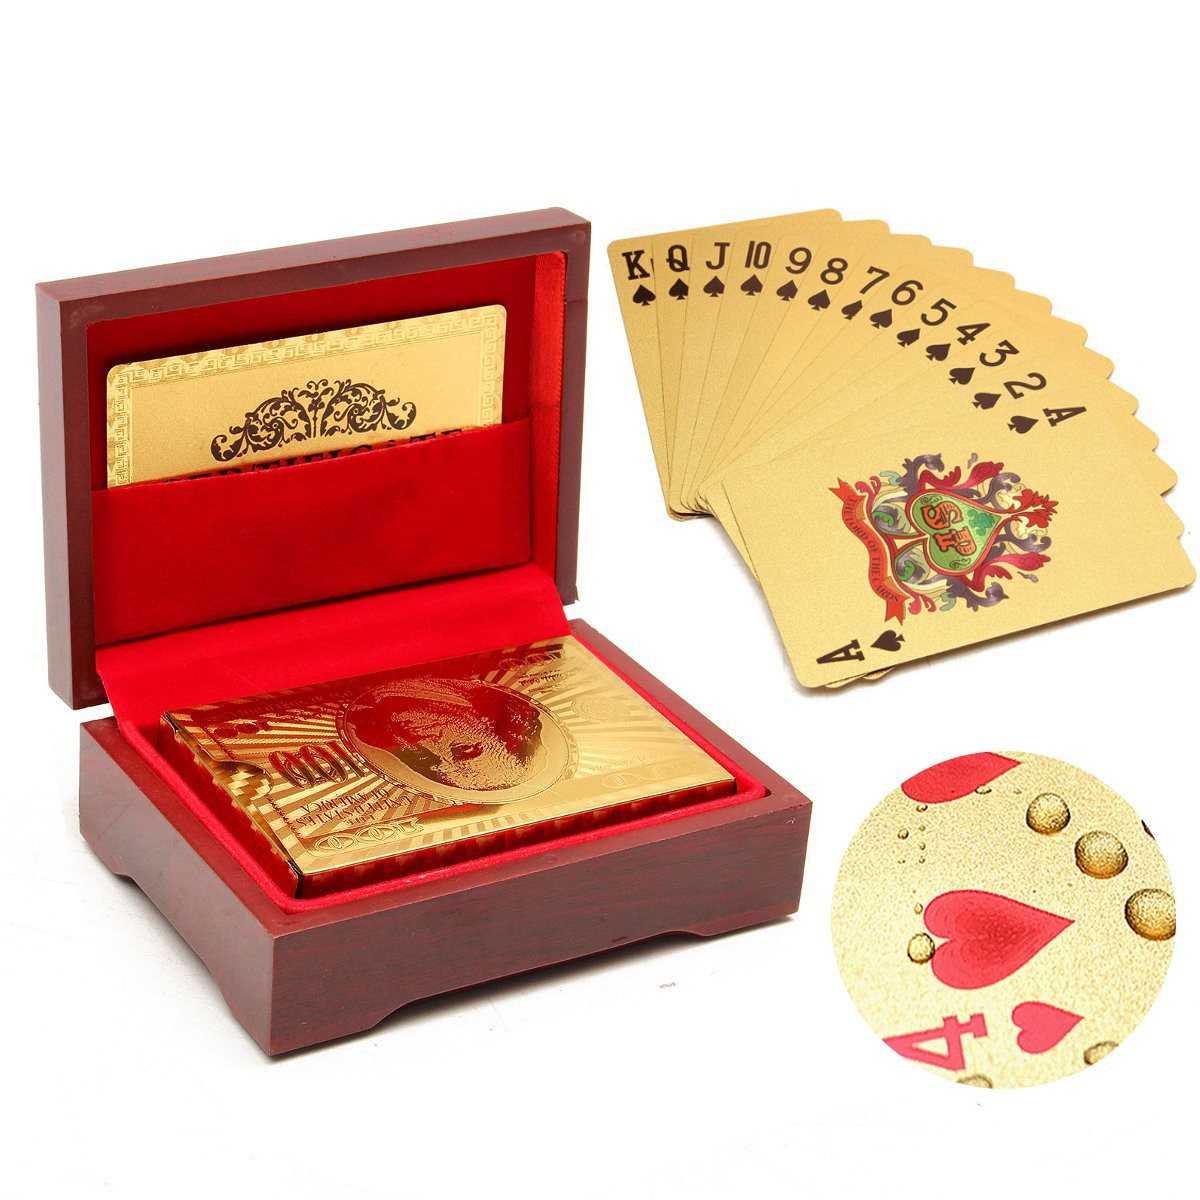 New Arrival Plastic Waterproof 1 Set Gold Poker Cards With Red Box Perfect for Birthday Anniversary Celebrations ...